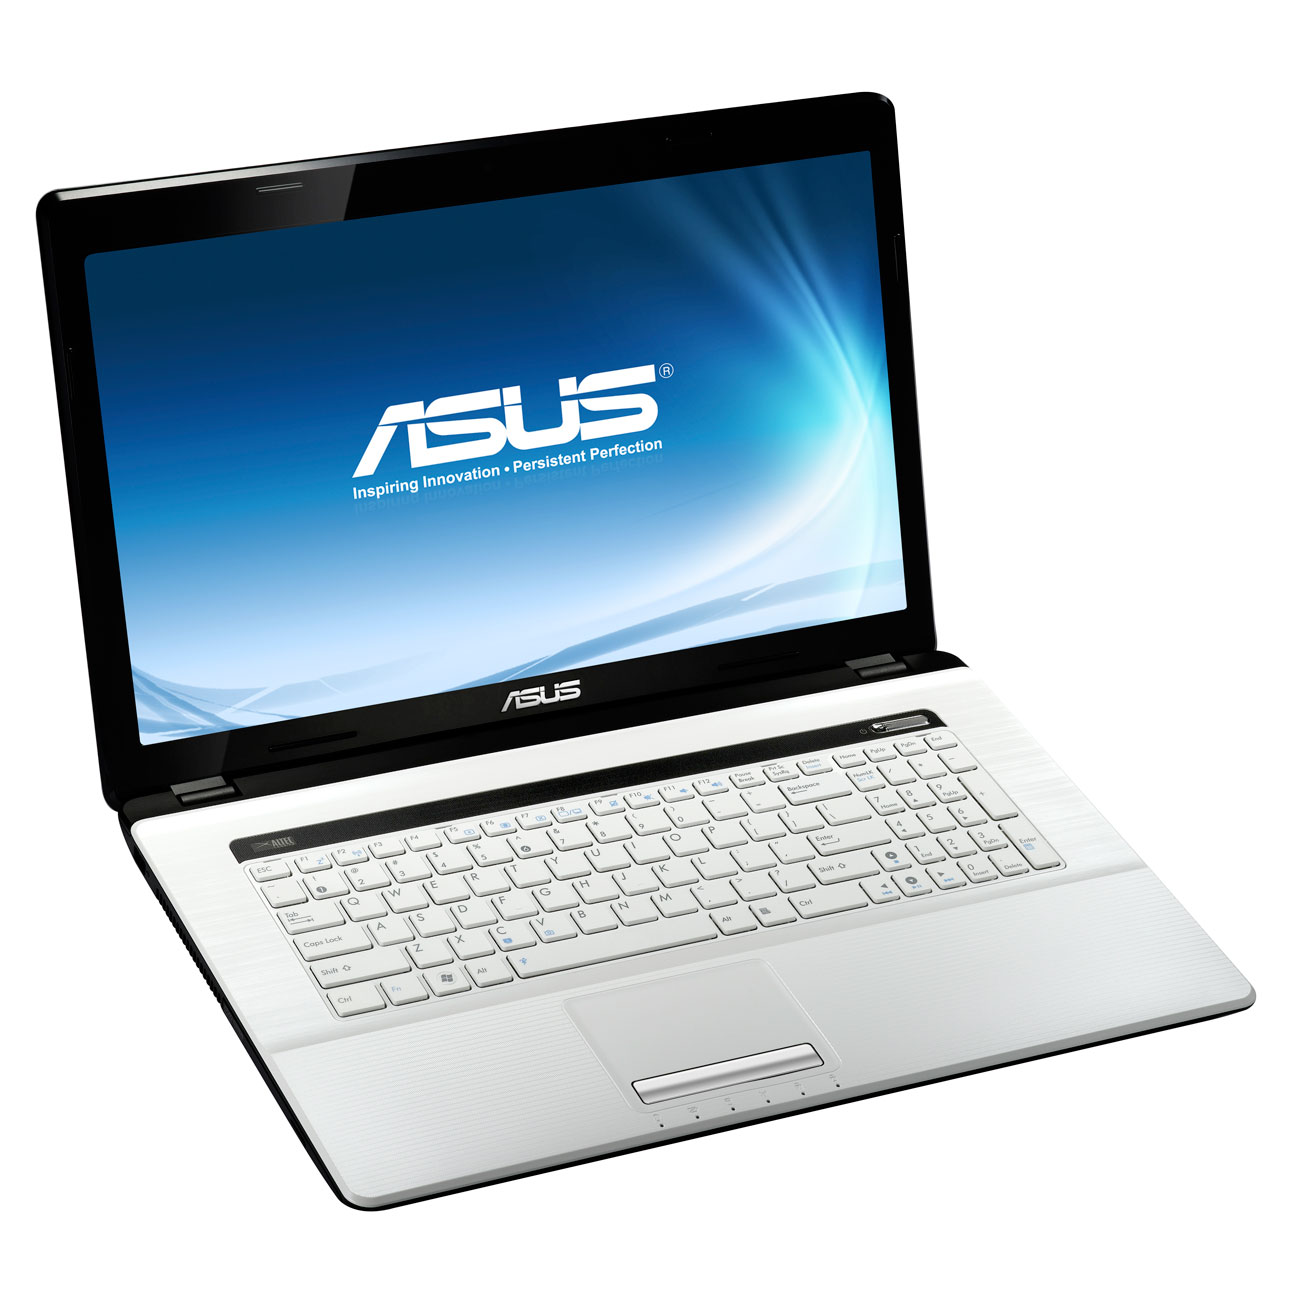 asus k73sd ty207v blanc pc portable asus sur. Black Bedroom Furniture Sets. Home Design Ideas